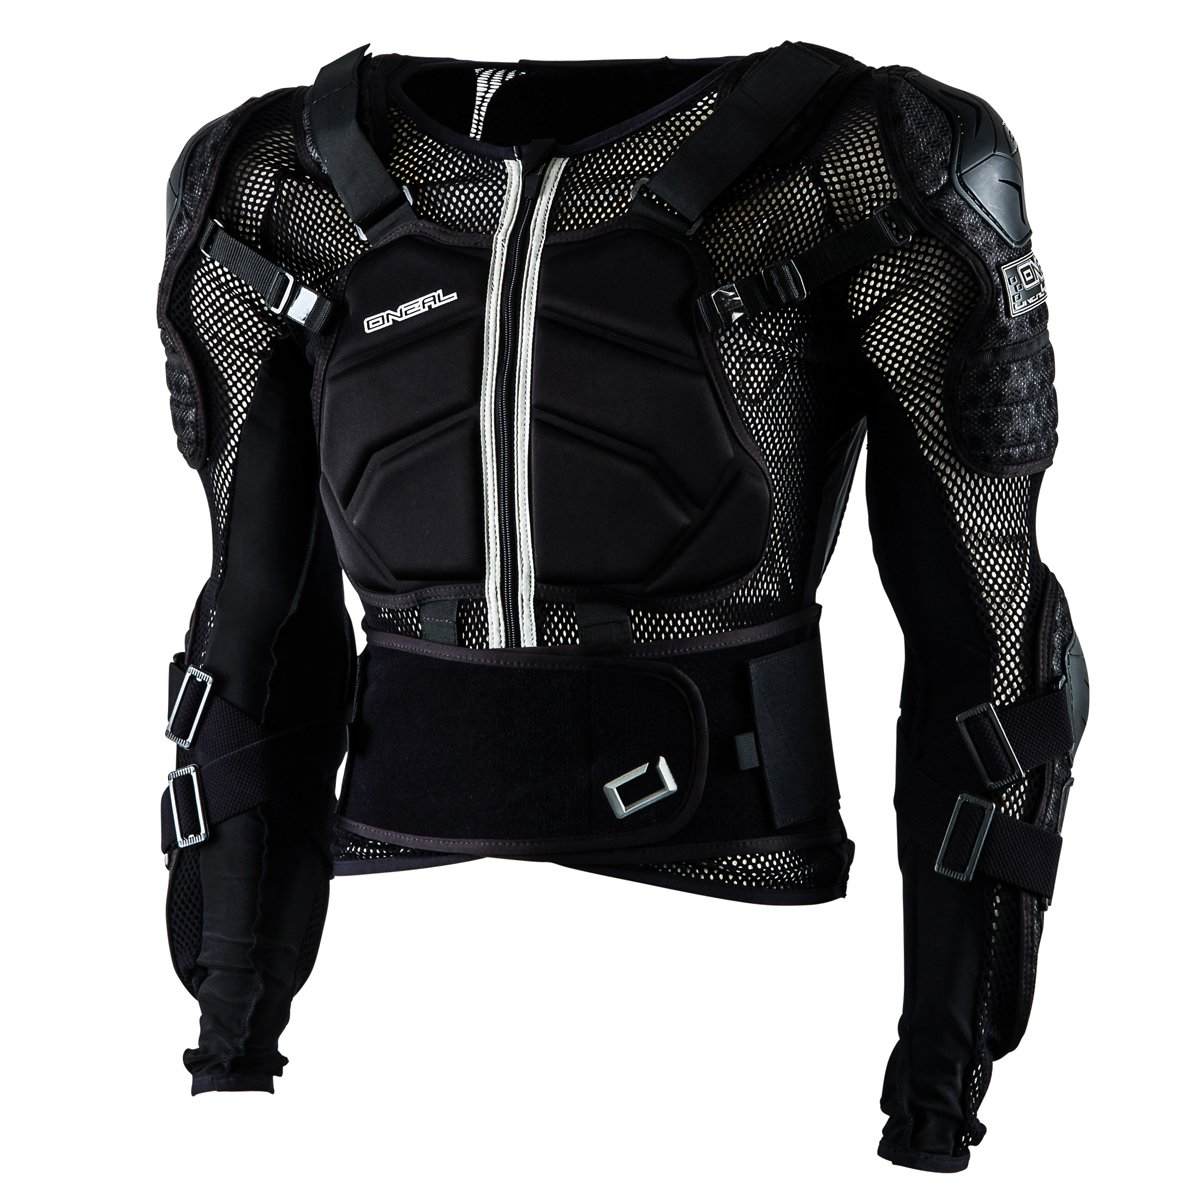 ONeal Under Dog 3 Unisex-Adult Body Armor Black, XX-Large